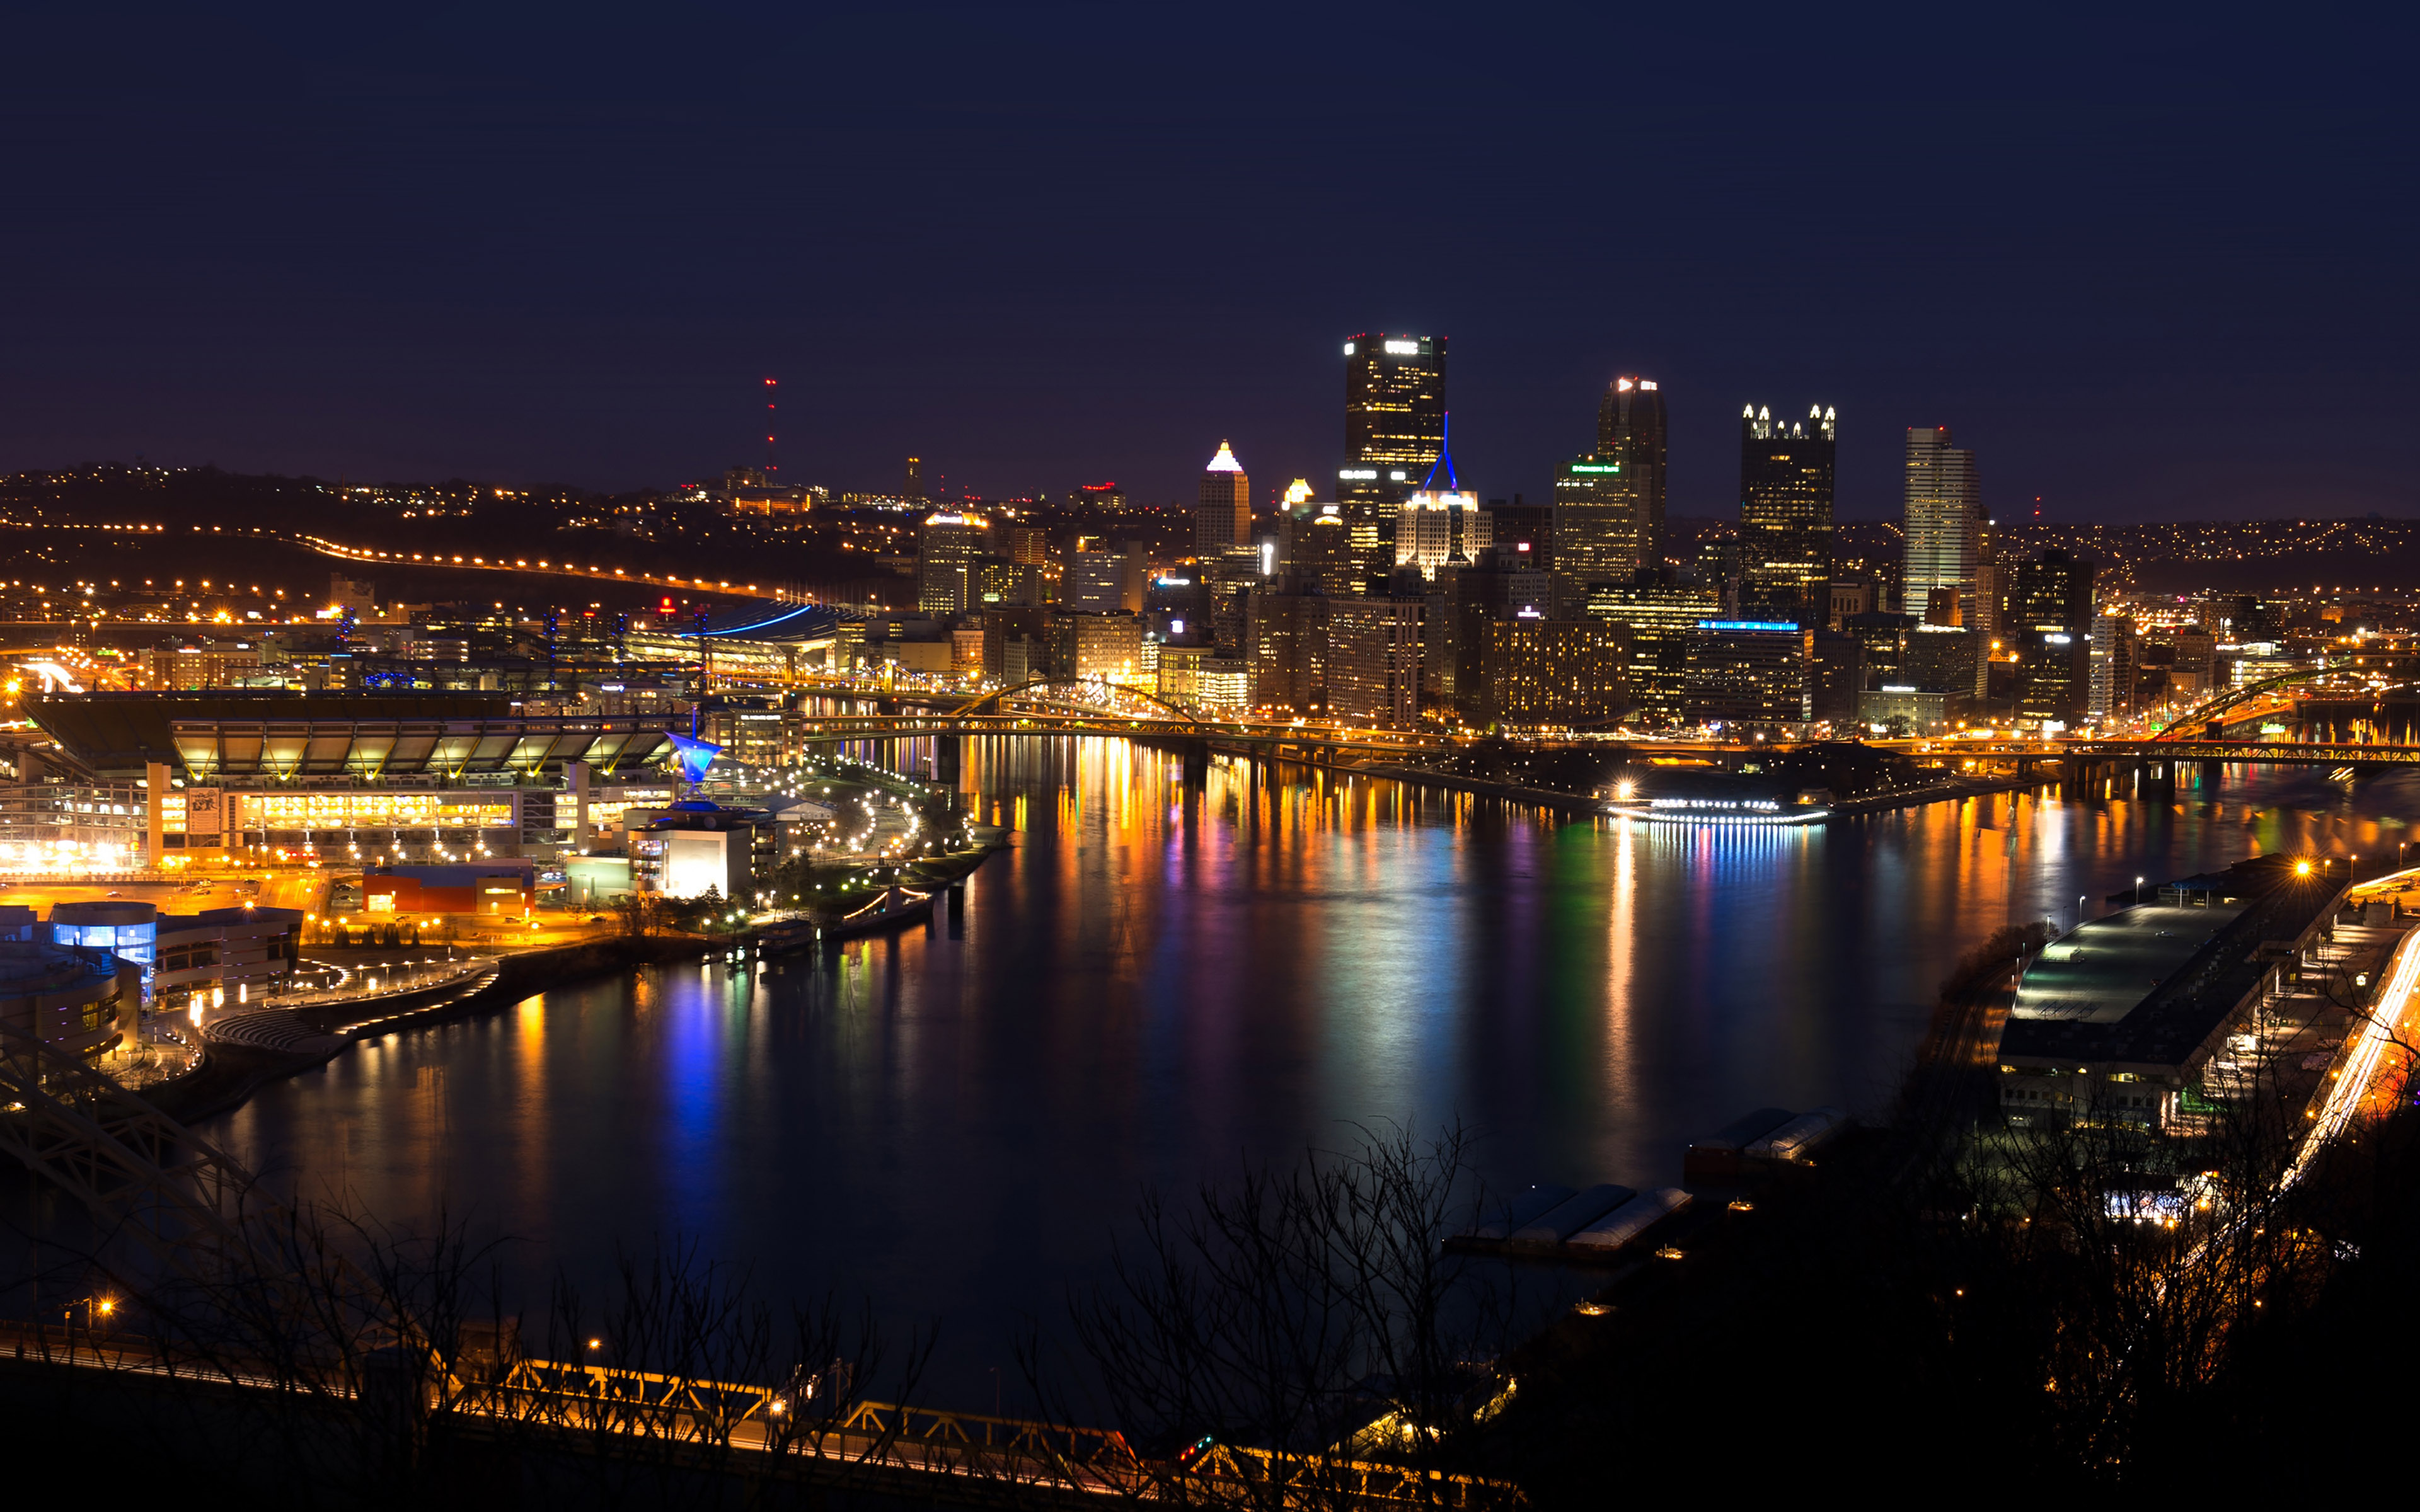 mh19-pittsburgh-skyline-night-cityview-nature - Papers.co